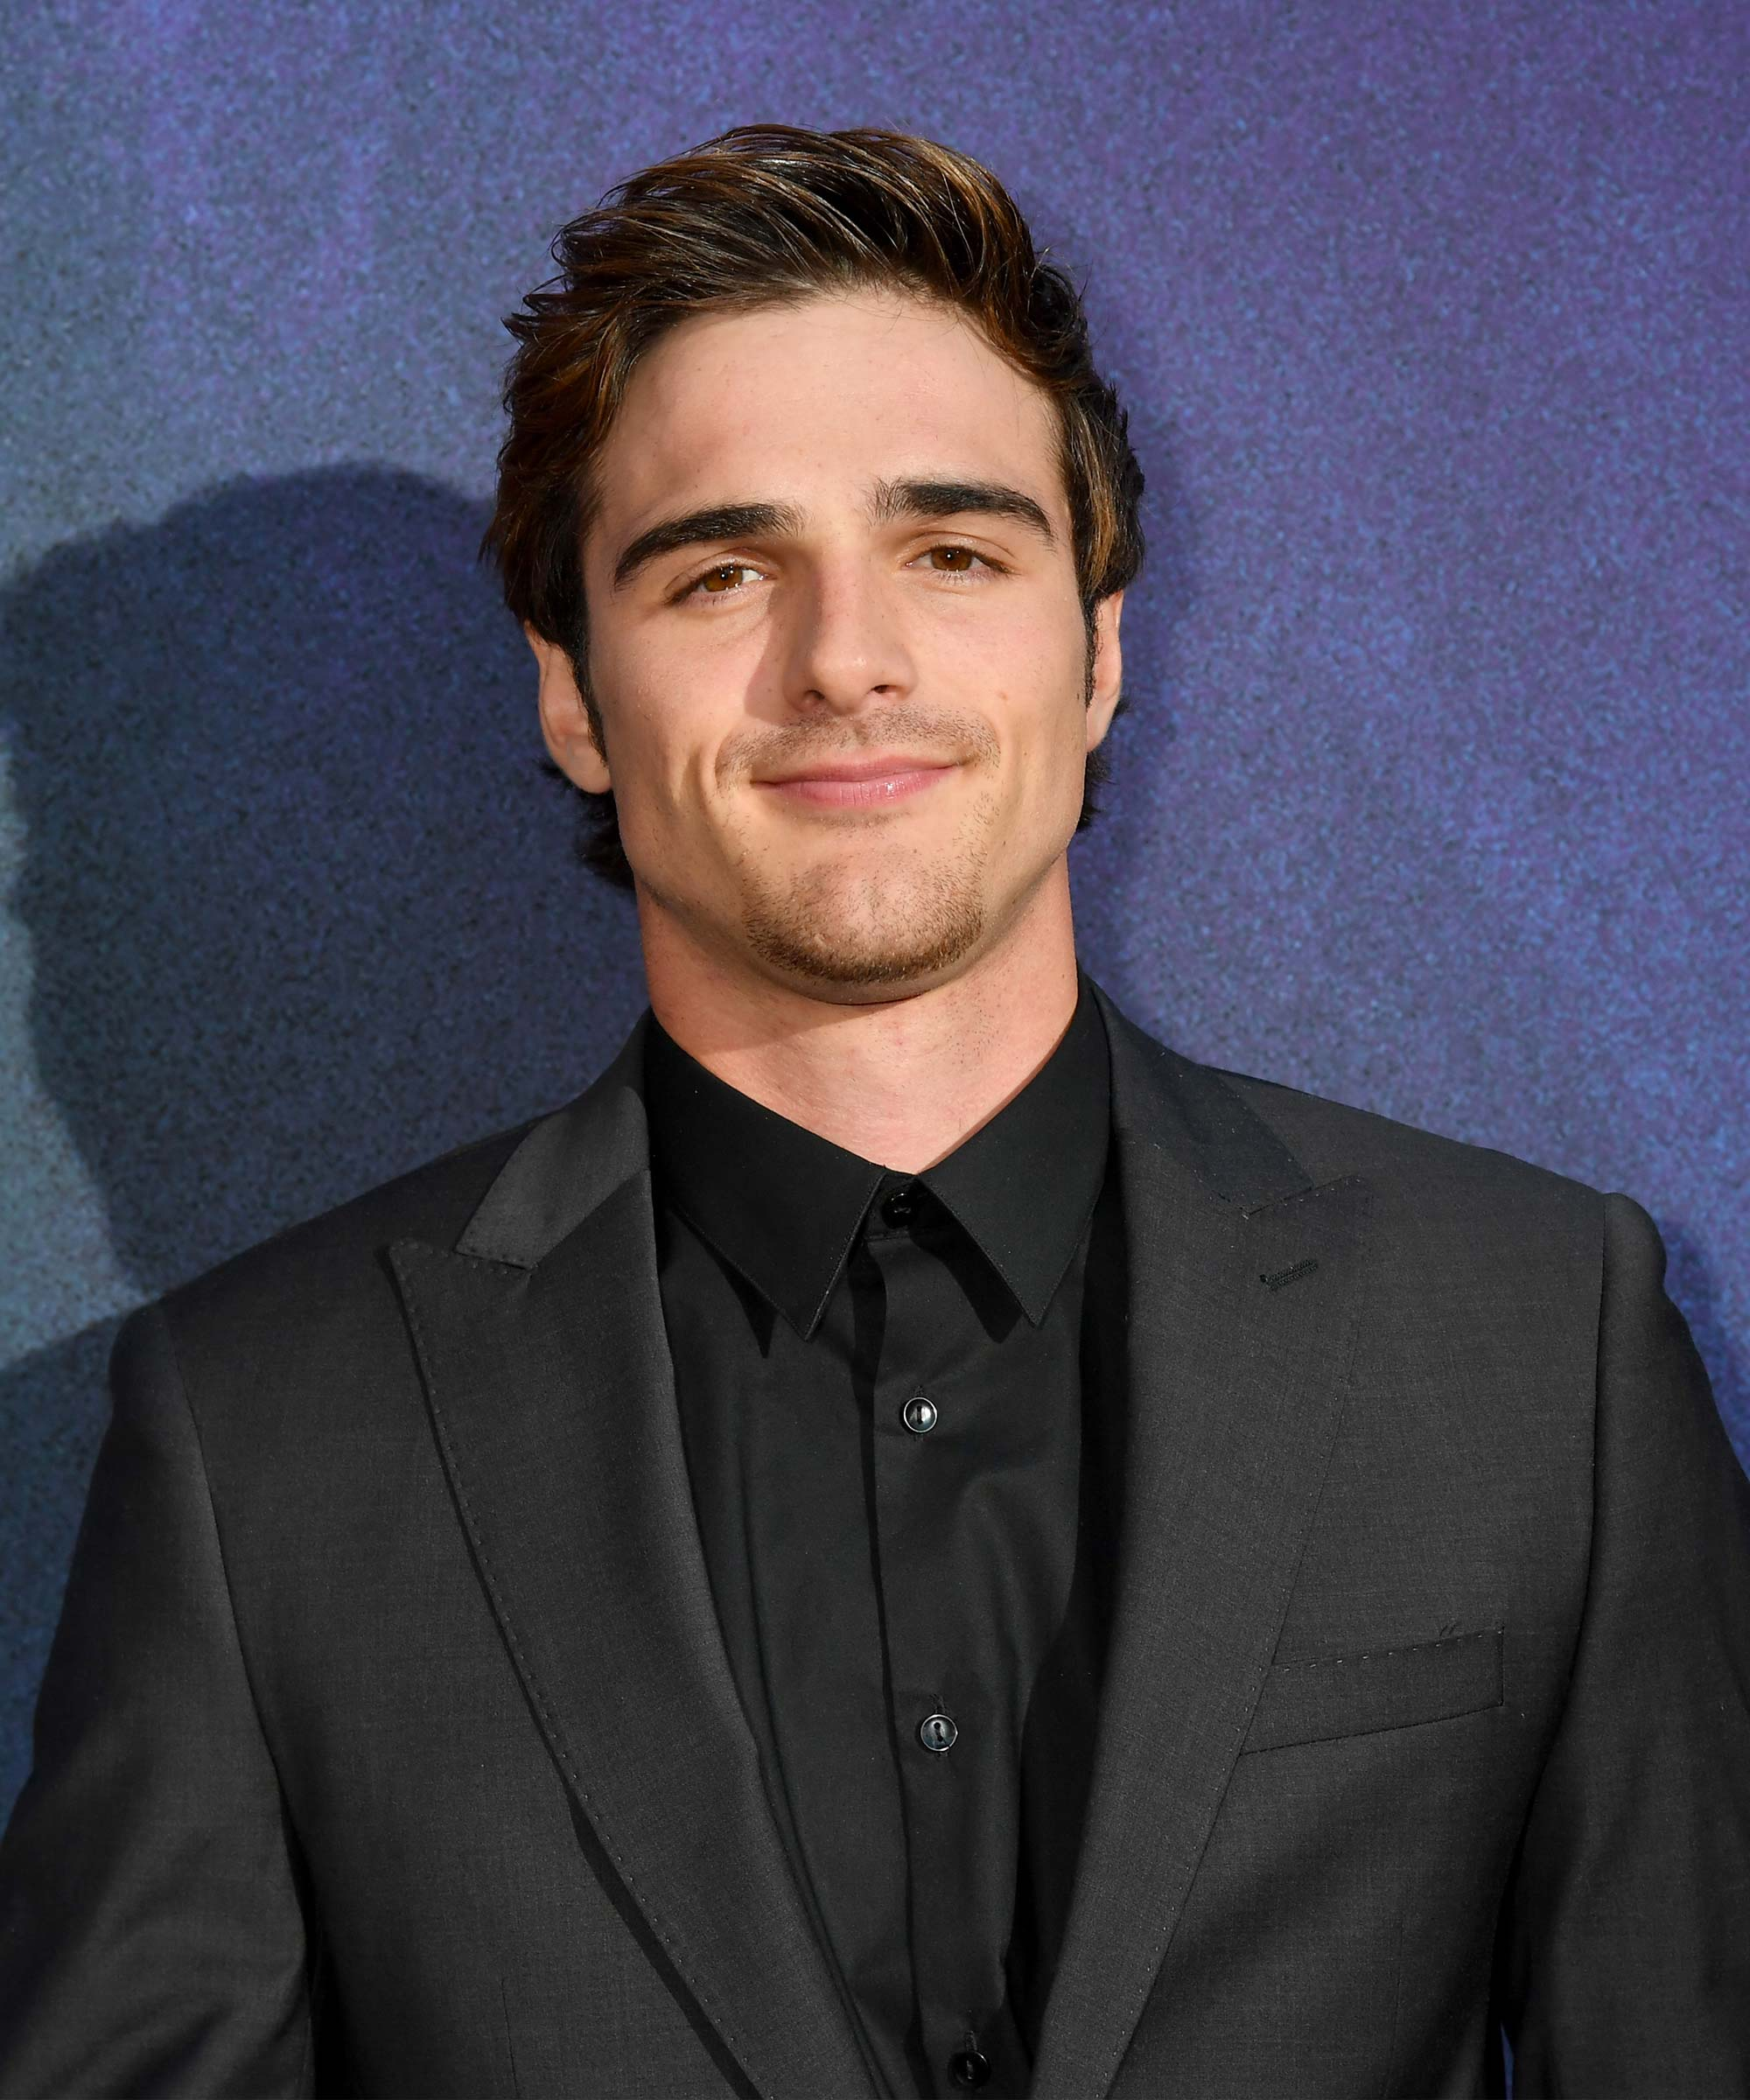 Jacob Elordi Talks Body Image The Kissing Booth